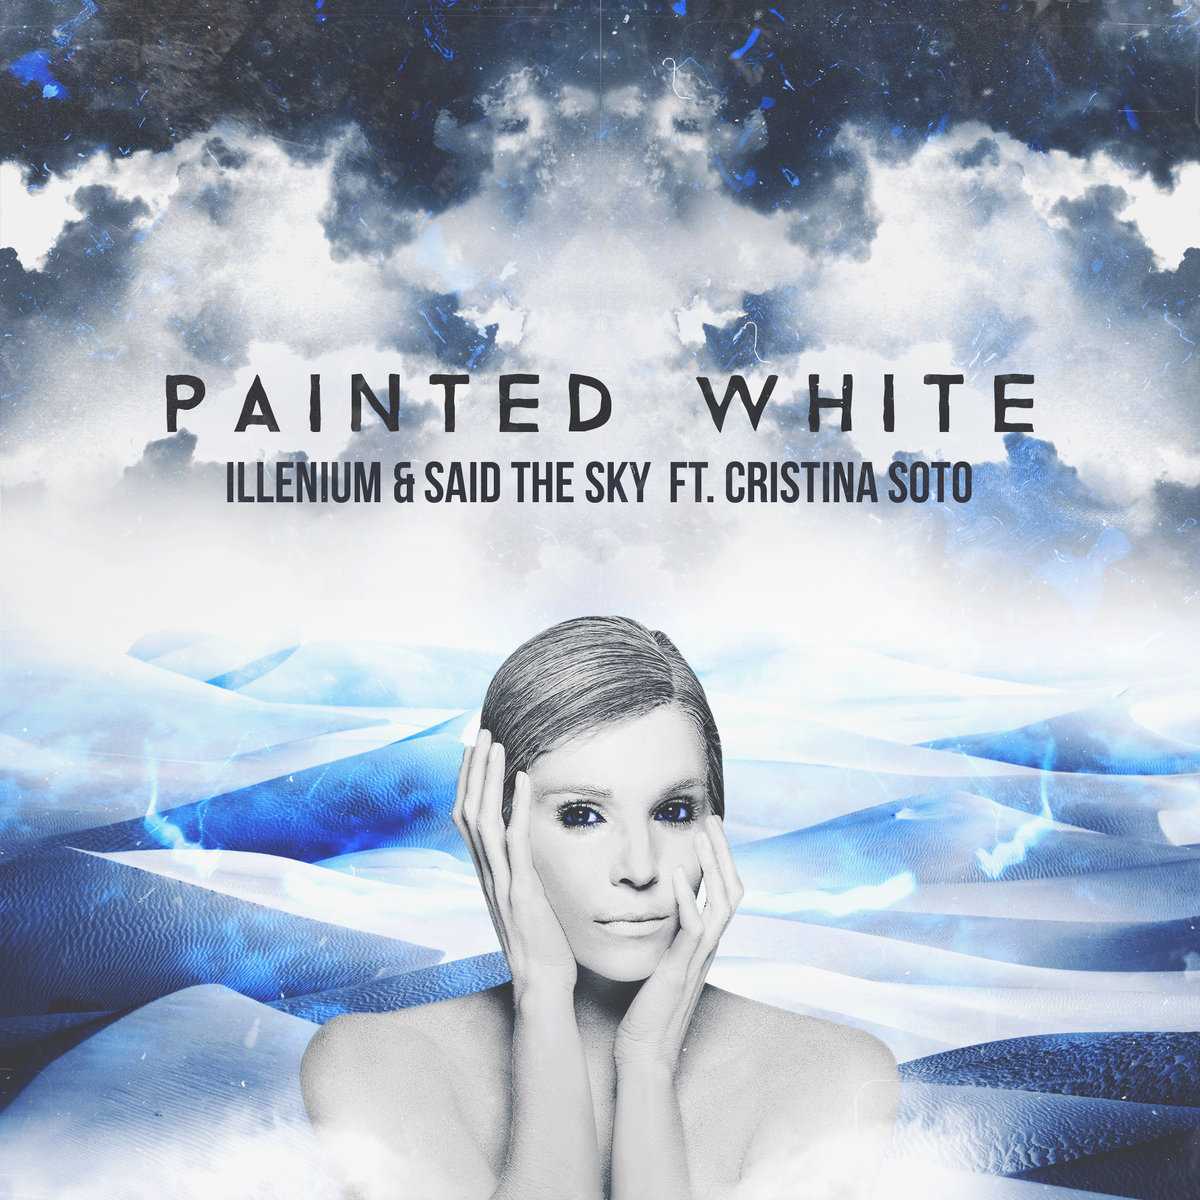 Illenium, Said The Sky, & Cristina Soto - Painted White (Clockvice Remix) @ 'Painted White' album (idm, bass)